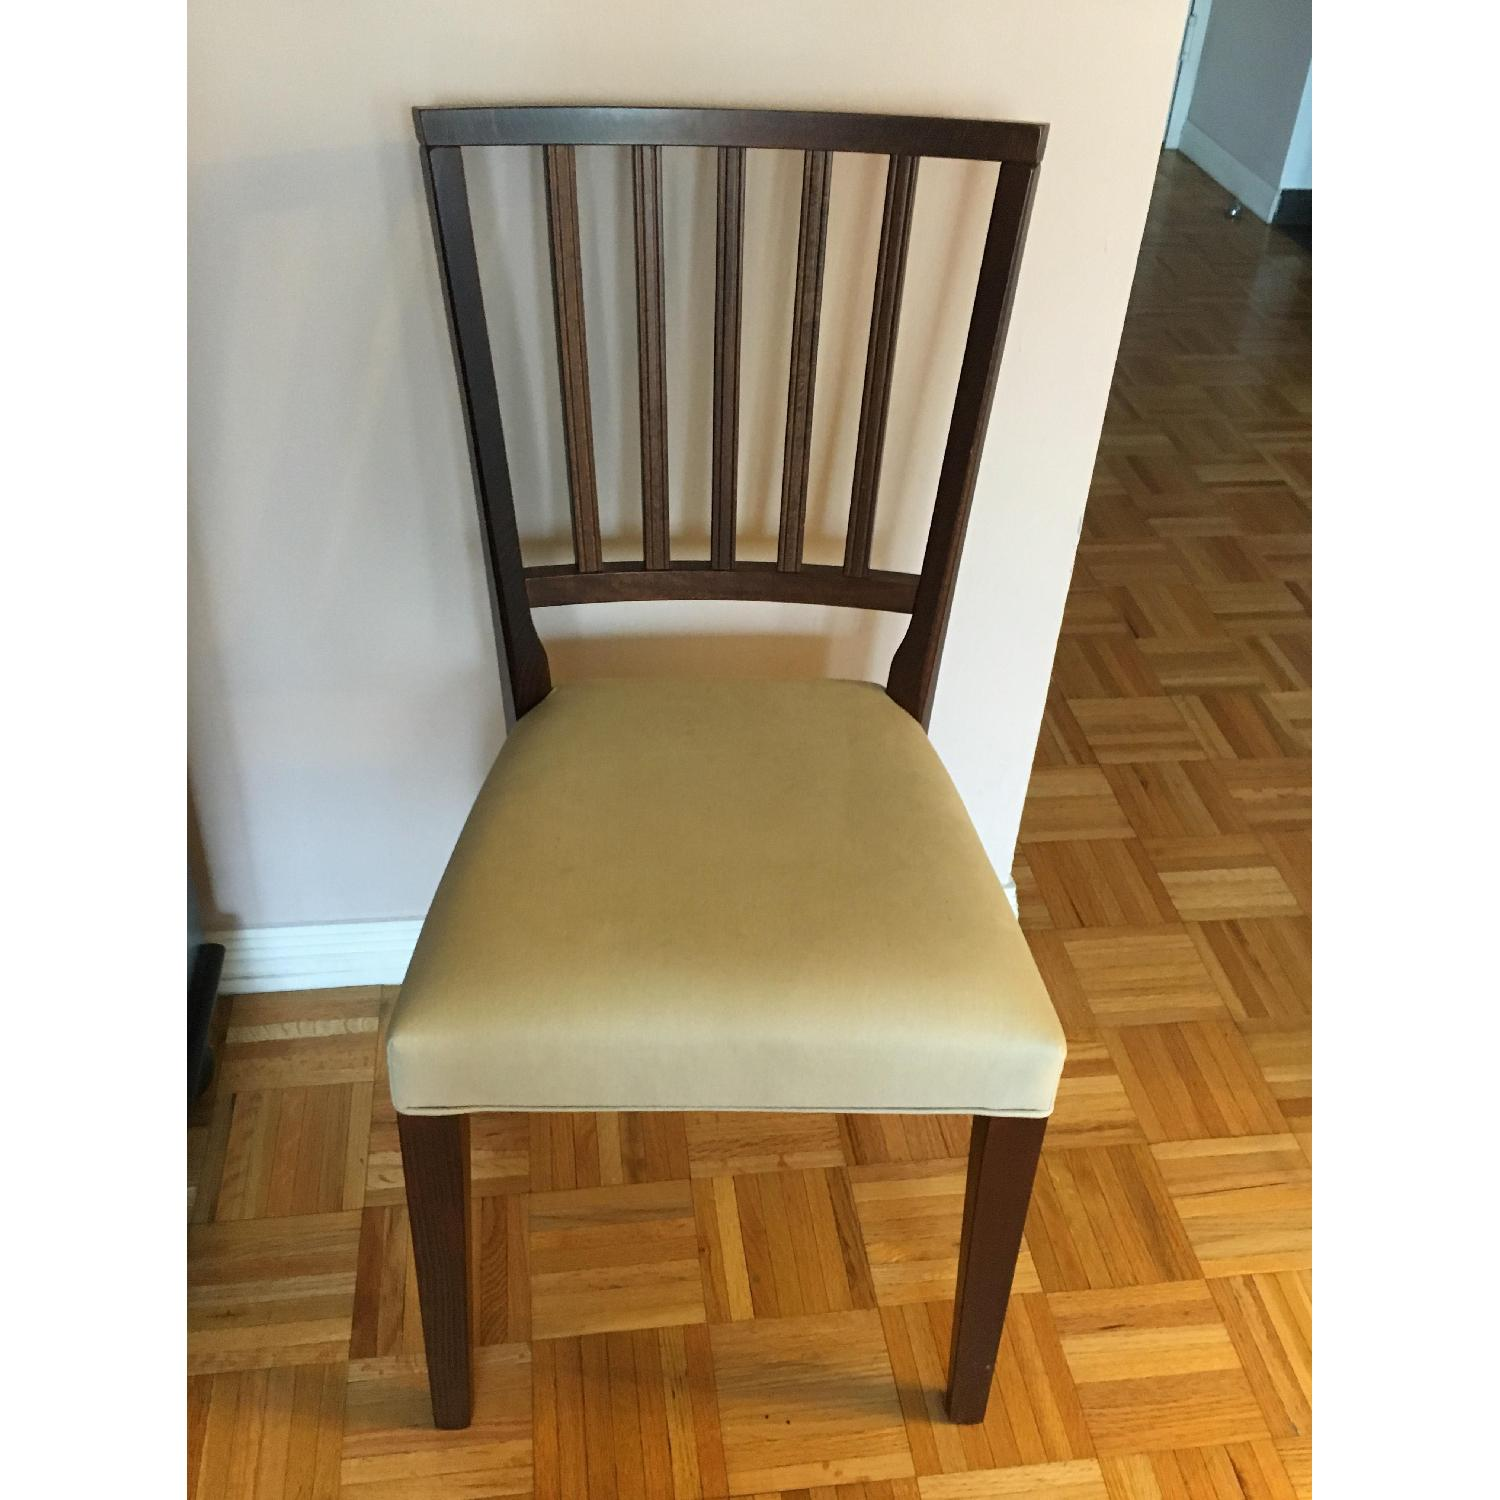 Pottery Barn Dining Chairs - image-1